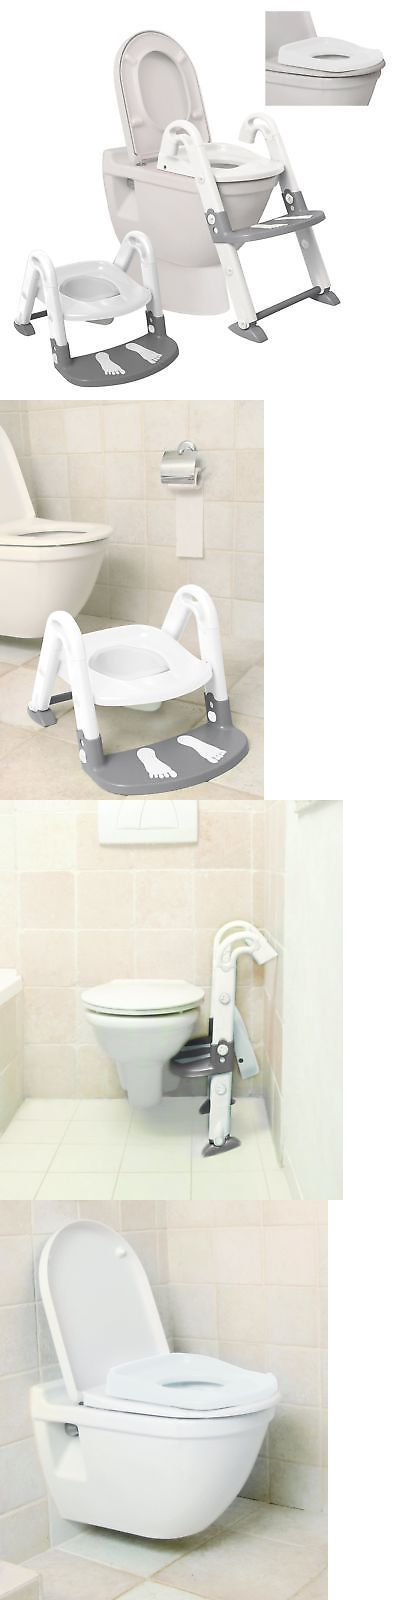 Dreambaby 3 In 1 Toilet Trainer, White | Toilet and Trainers